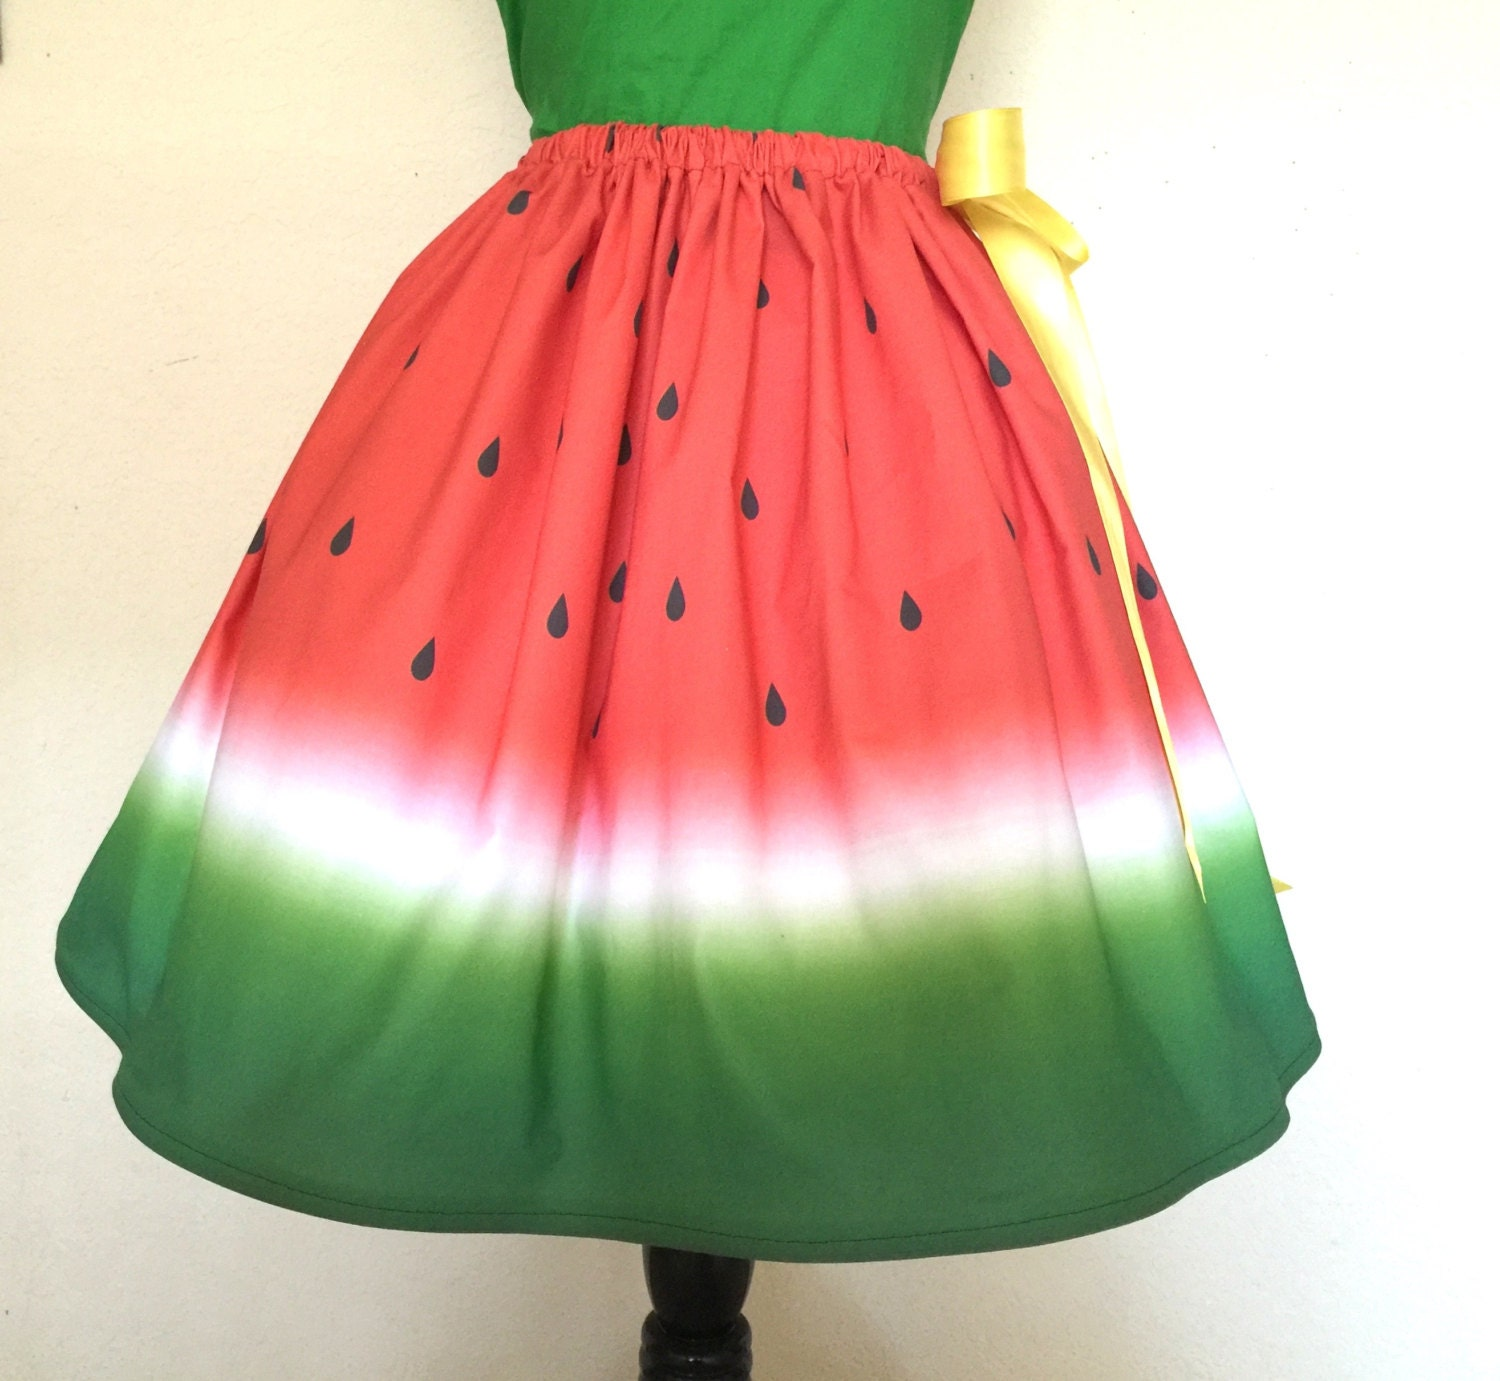 Watermelon Skirt for Gals e size fits all Plus Size